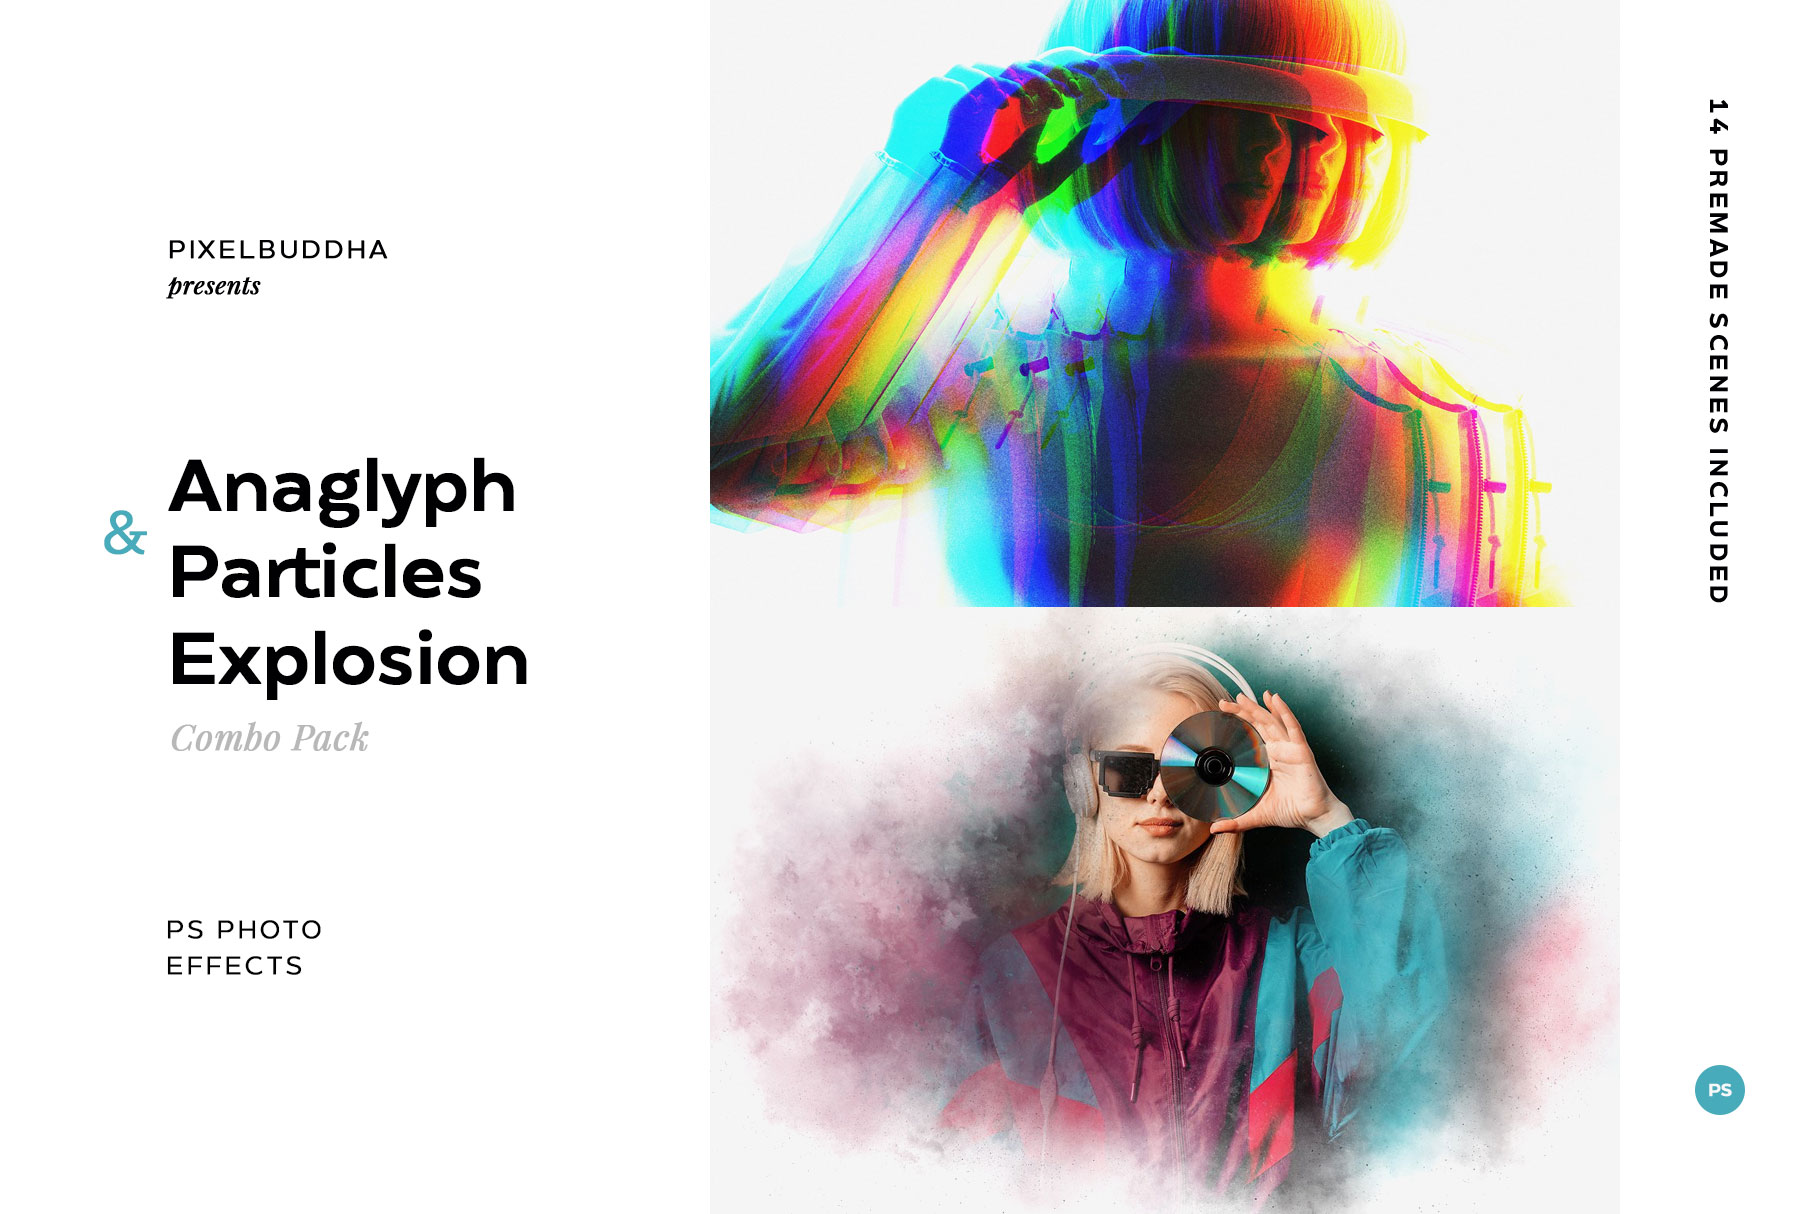 Anaglyph & Particles Explosion Combo Pack